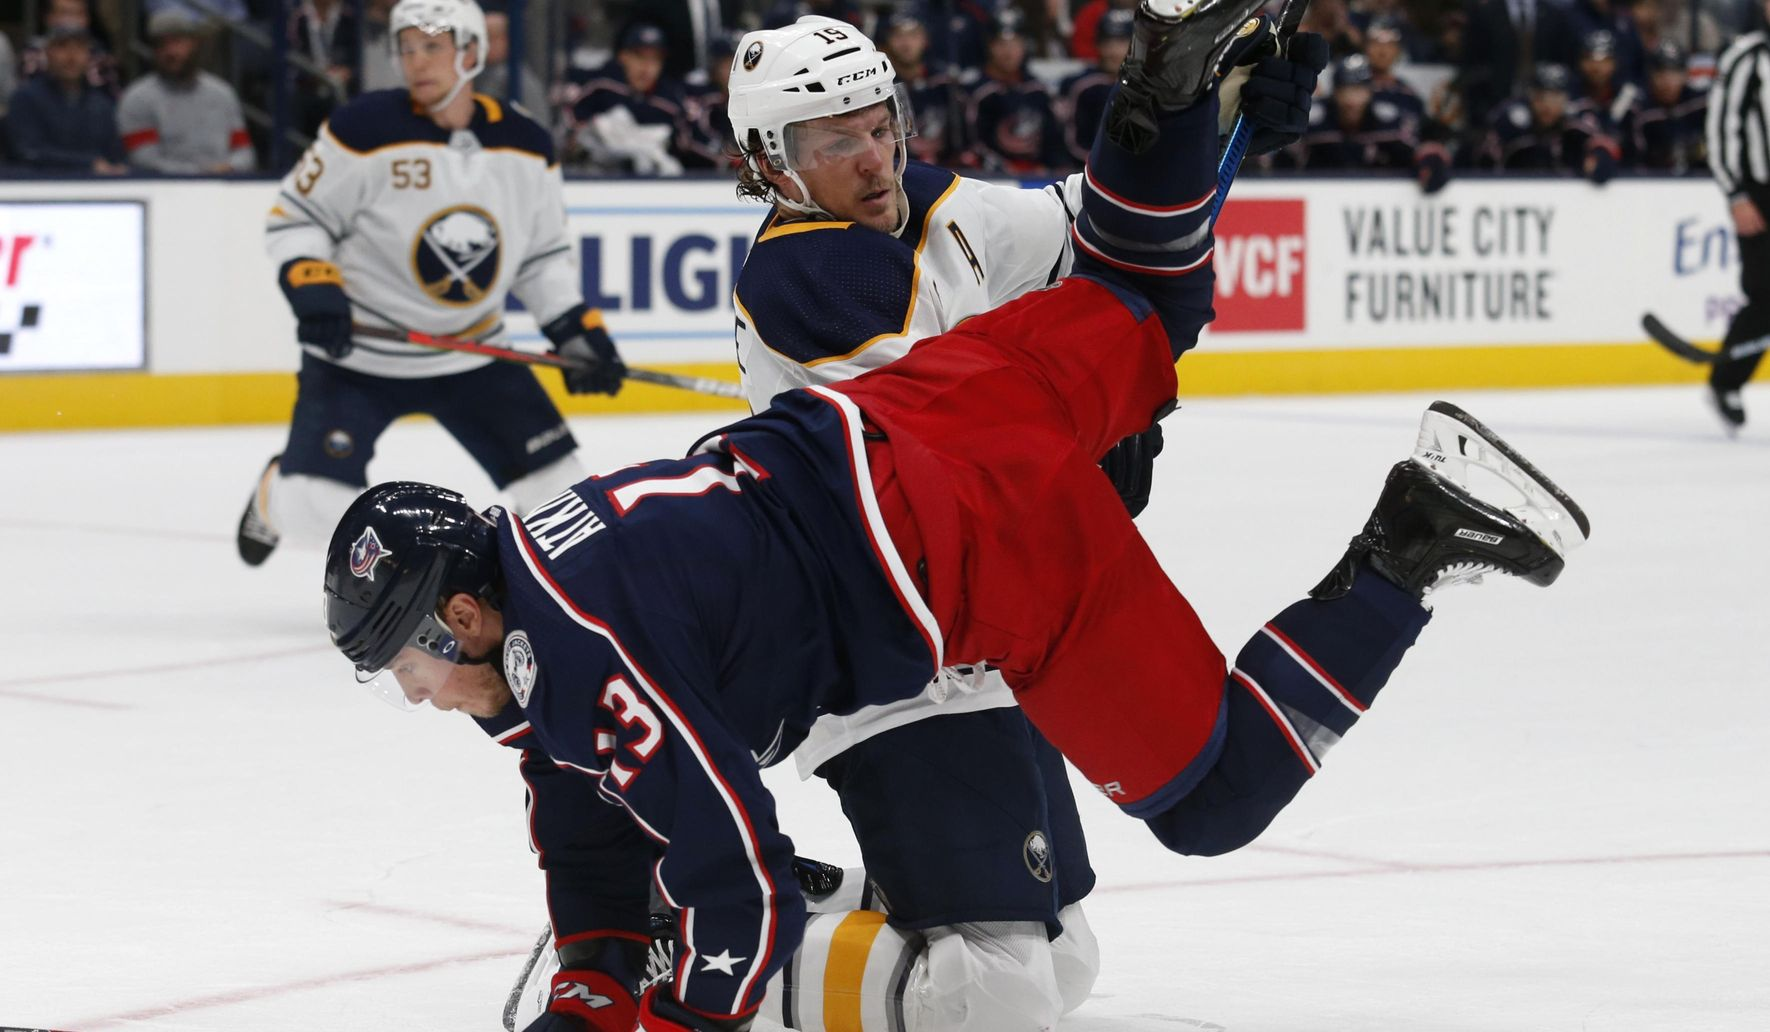 Sabres_blue_jackets_hockey_55383_c0-311-3543-2376_s1770x1032